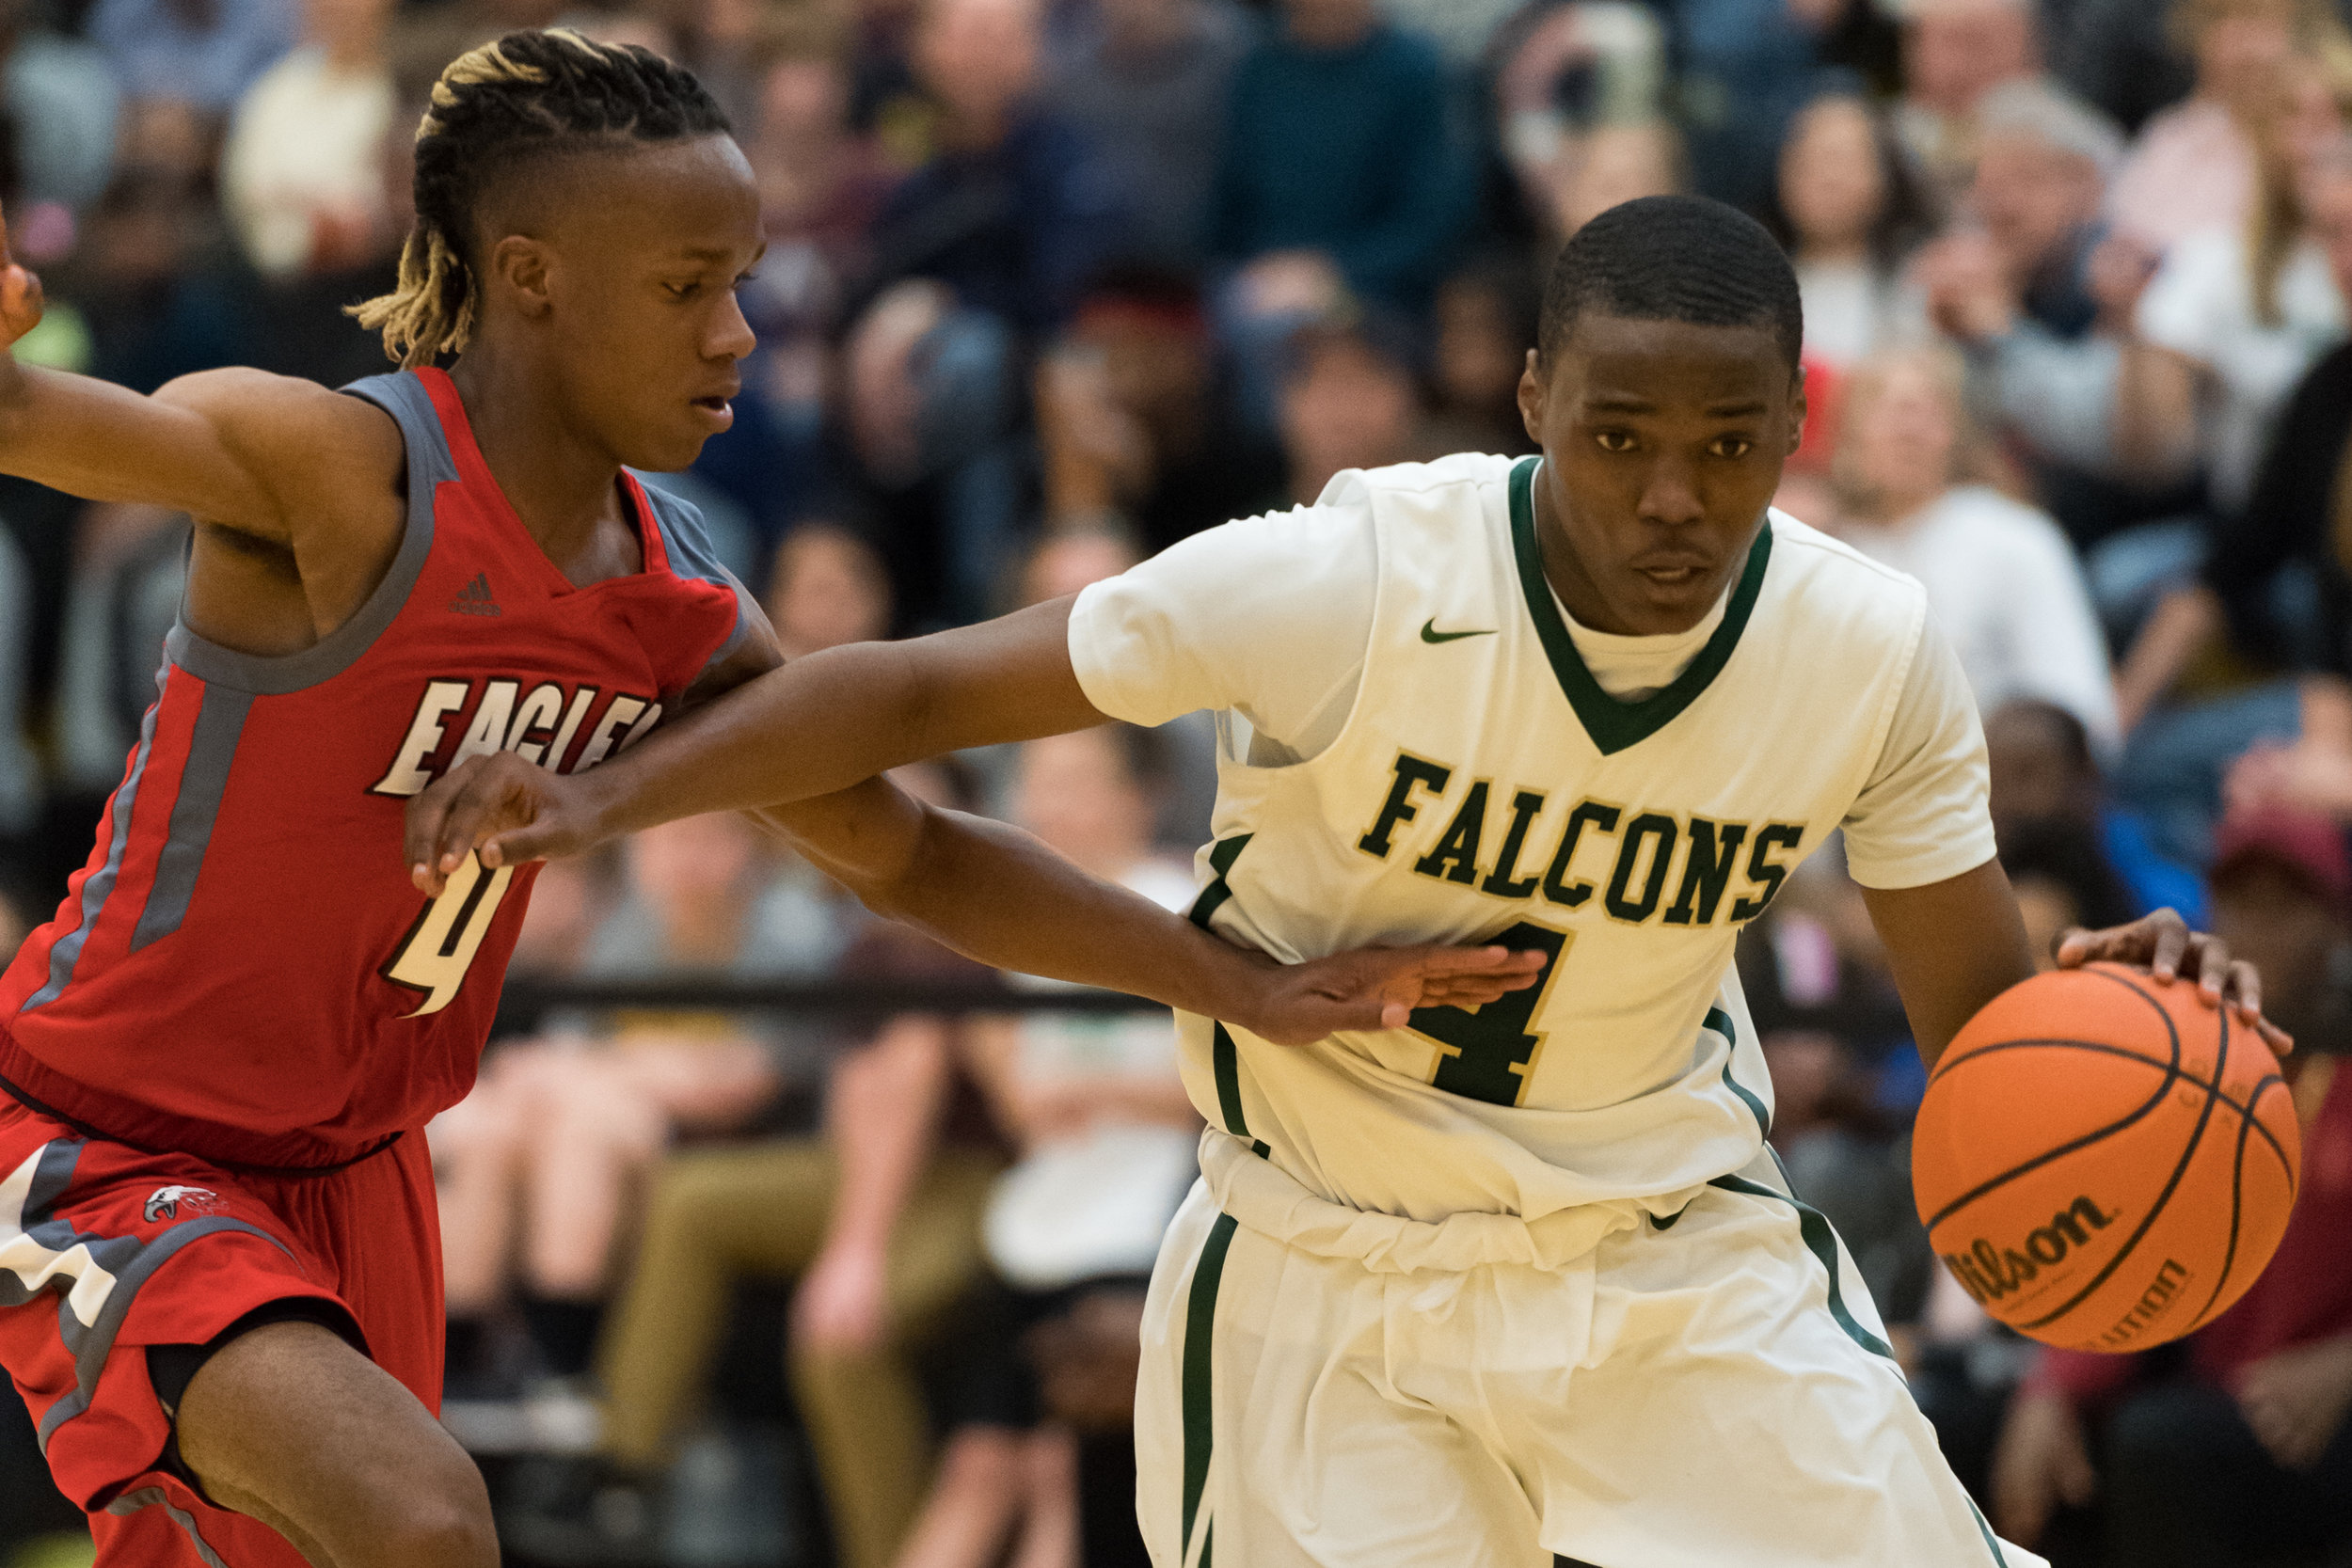 Cox's Deshawn Creighton drives towards the basket under pressure from Franklin's Chandler Taylor during the Saturday, March 3, 2018 game held at Kellam High School.